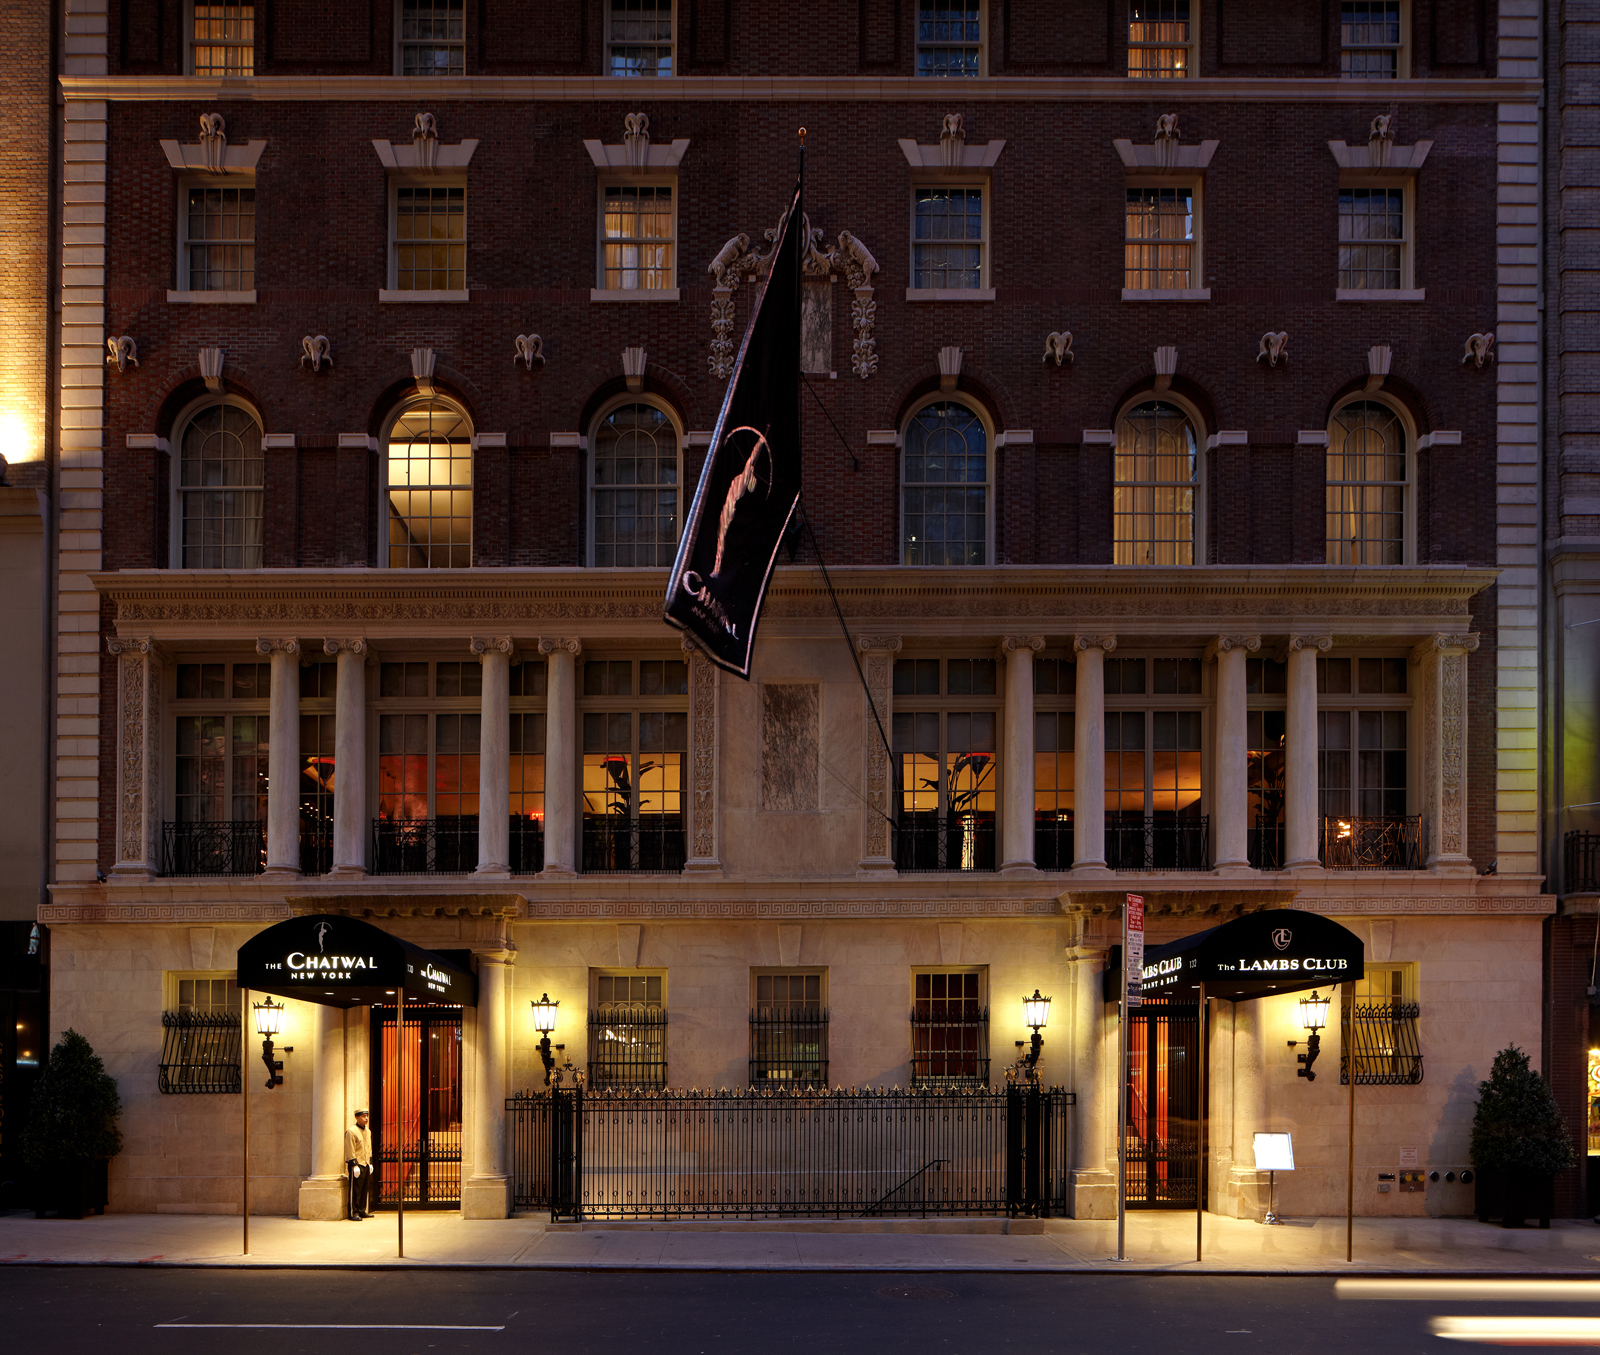 Chatwal Hotel in New York